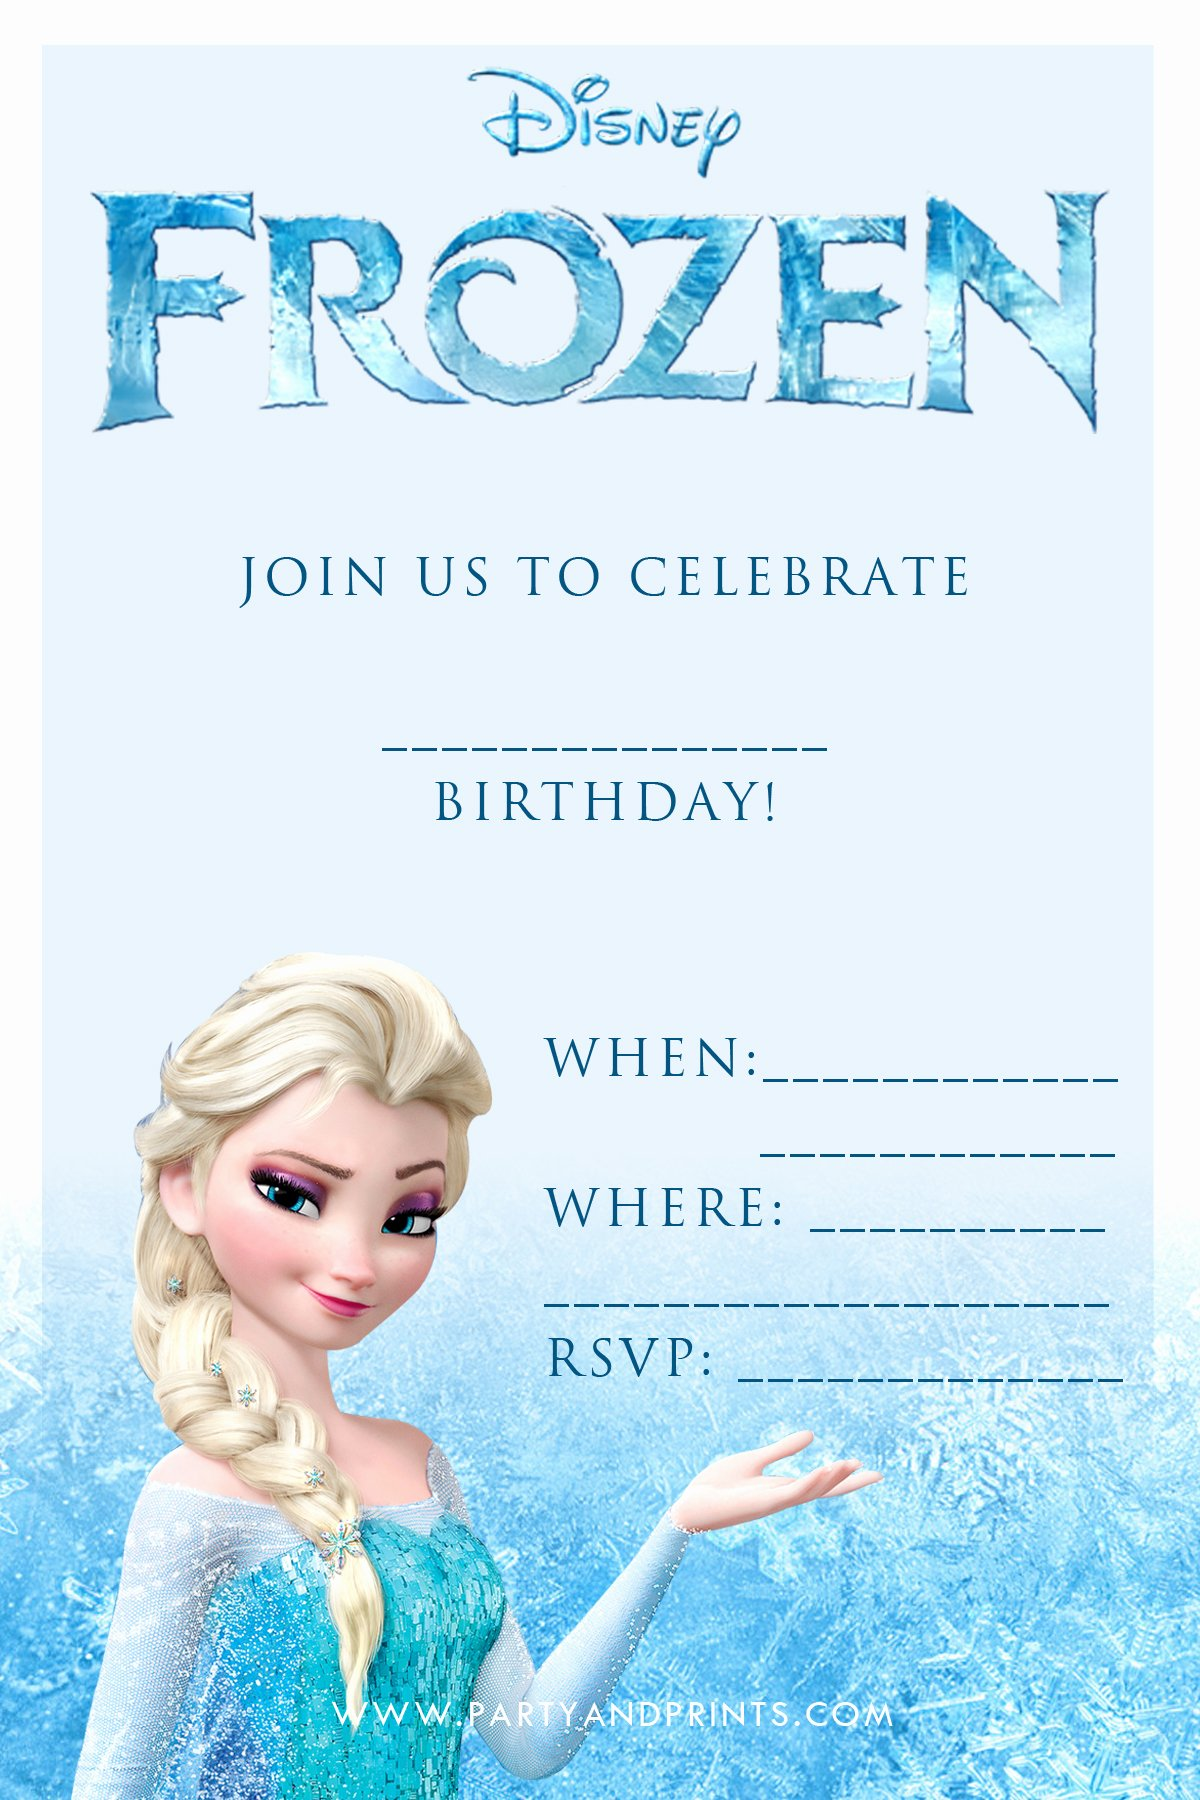 Frozen Party Invitation Template Beautiful 20 Frozen Birthday Party Ideas